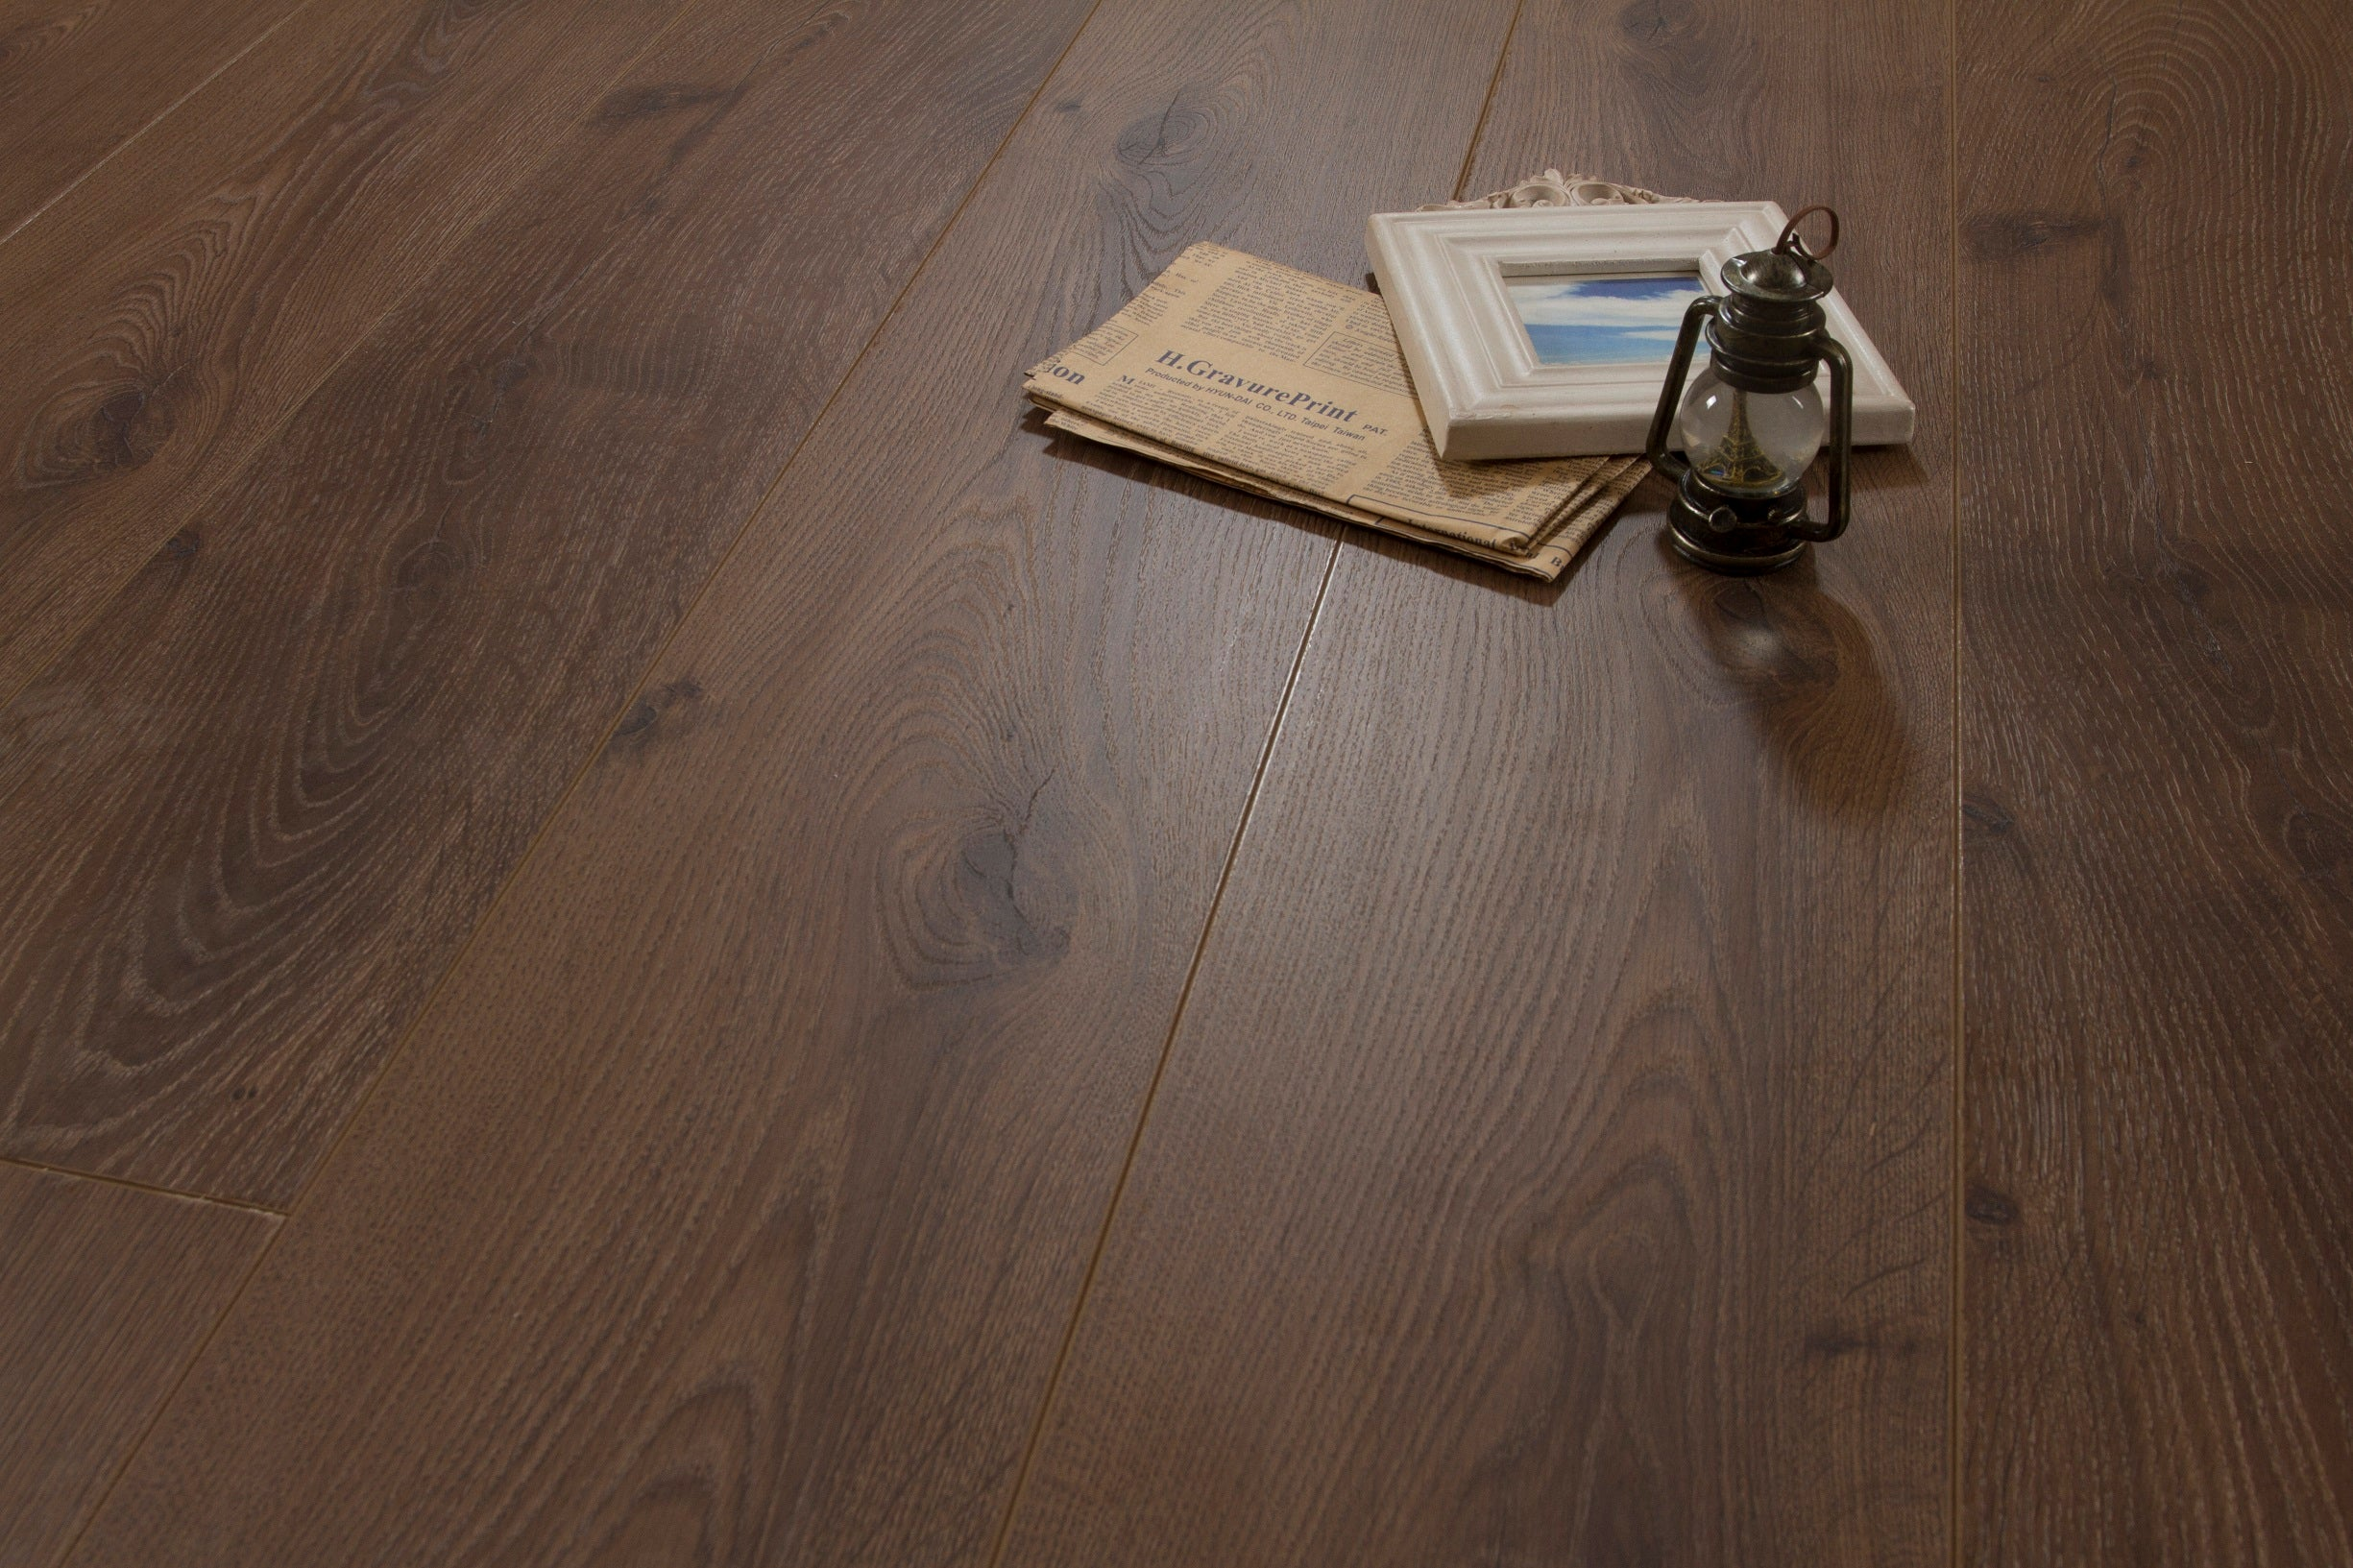 Milano Floors - Galaxy Collection - Pluto - IM-042